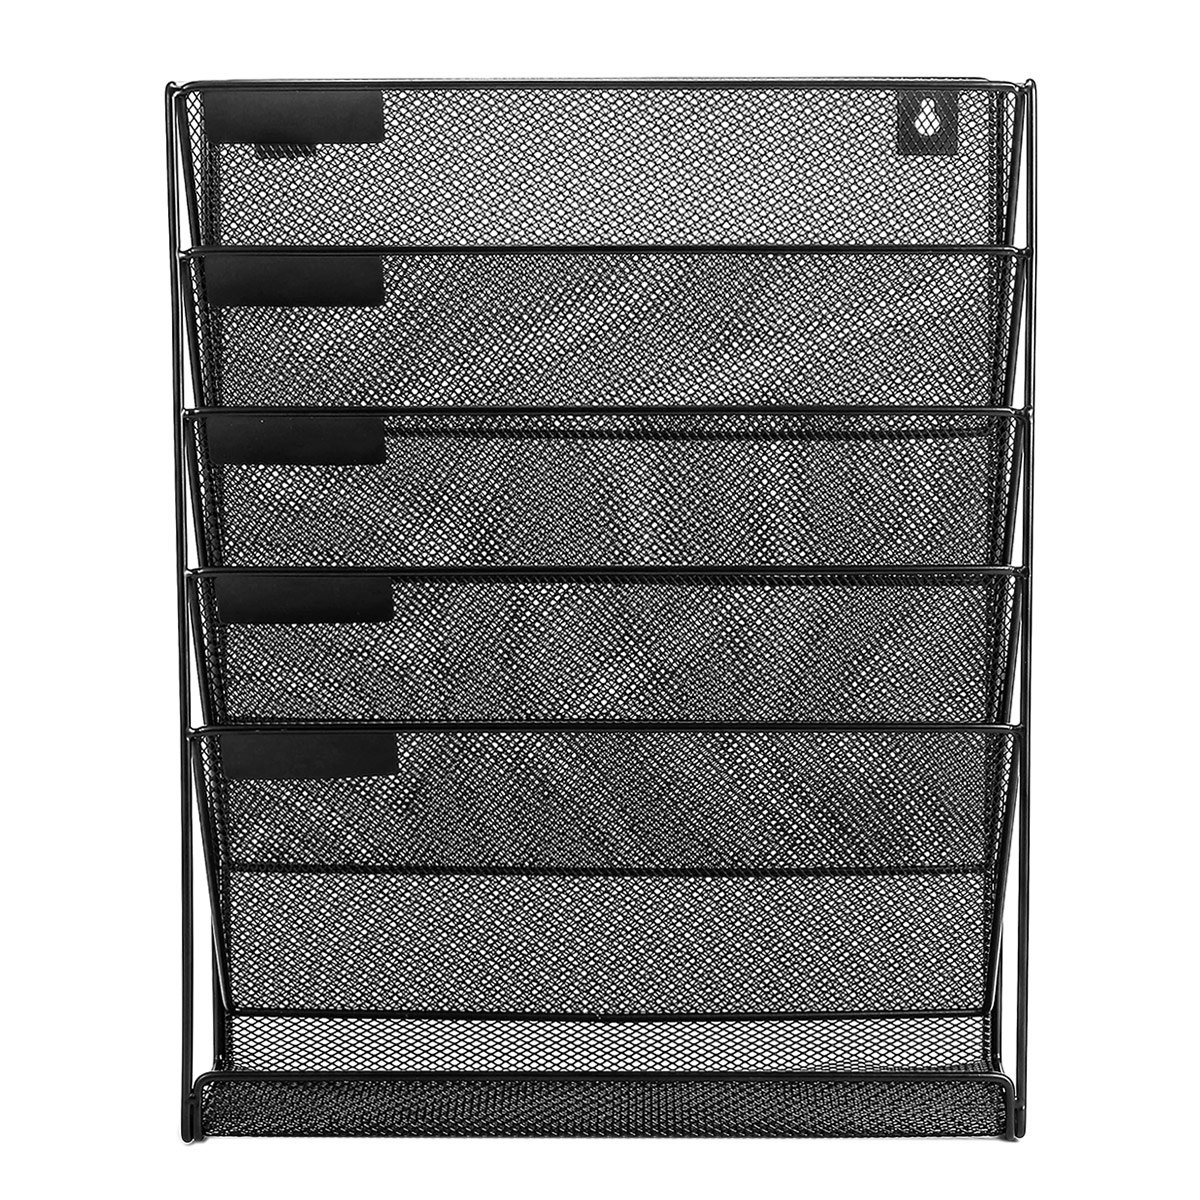 Amazon.com : Veesun Wall File Holder Organizer for Office, Hanging ...